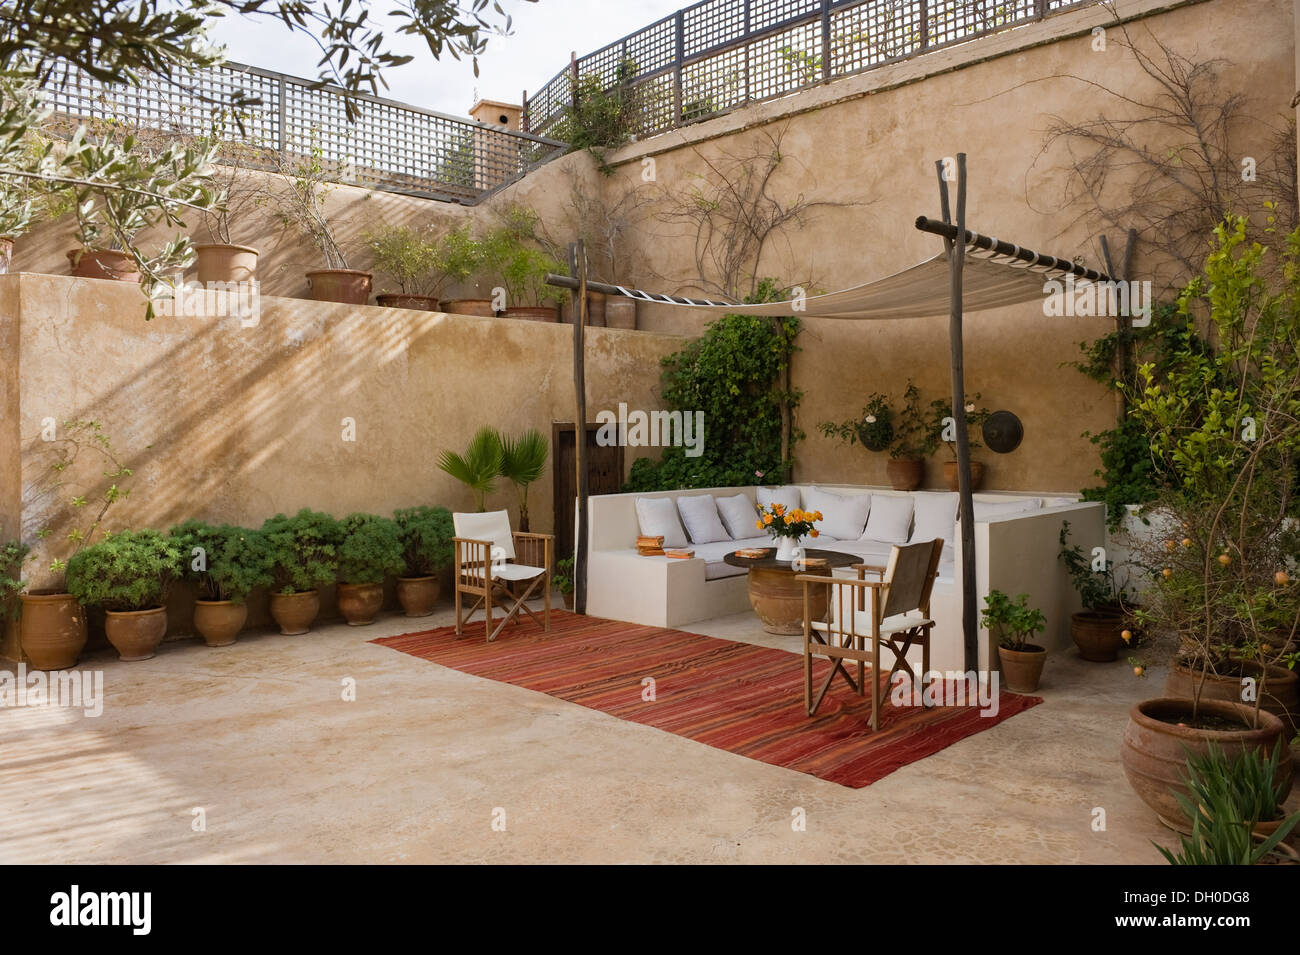 Moroccan Internal Courtyard Garden With Covered Seating